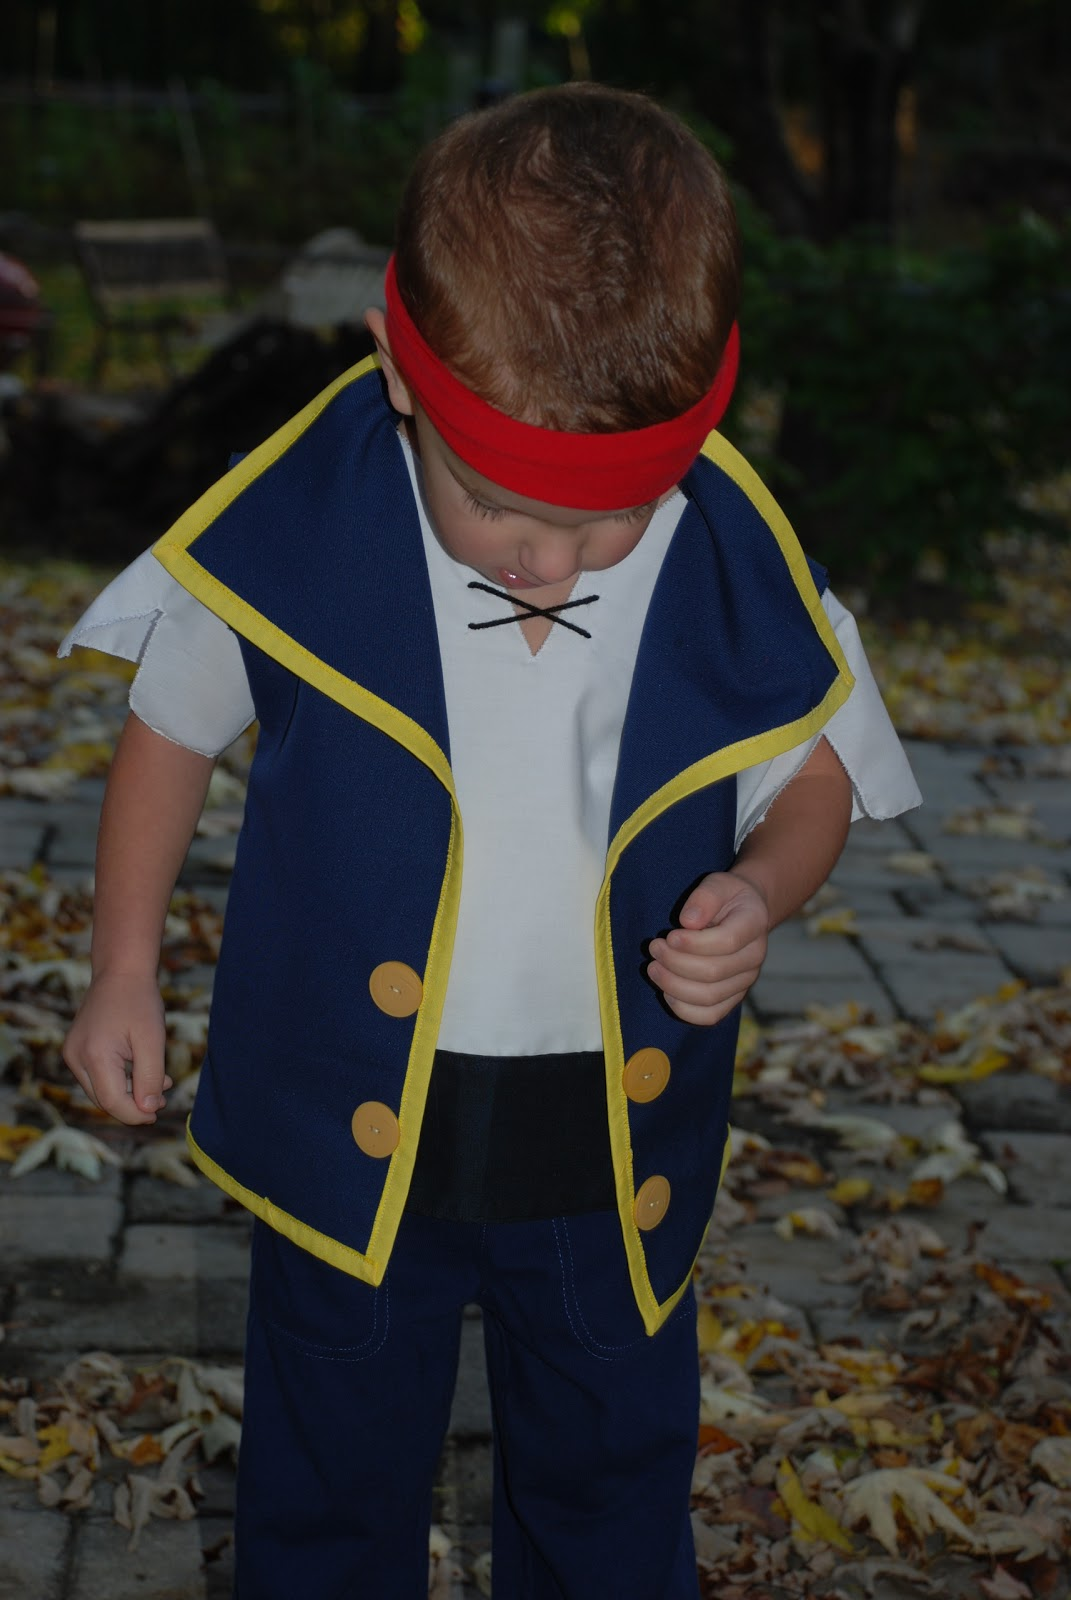 & between the toys: Jake and the Neverland Pirates costume tutorial